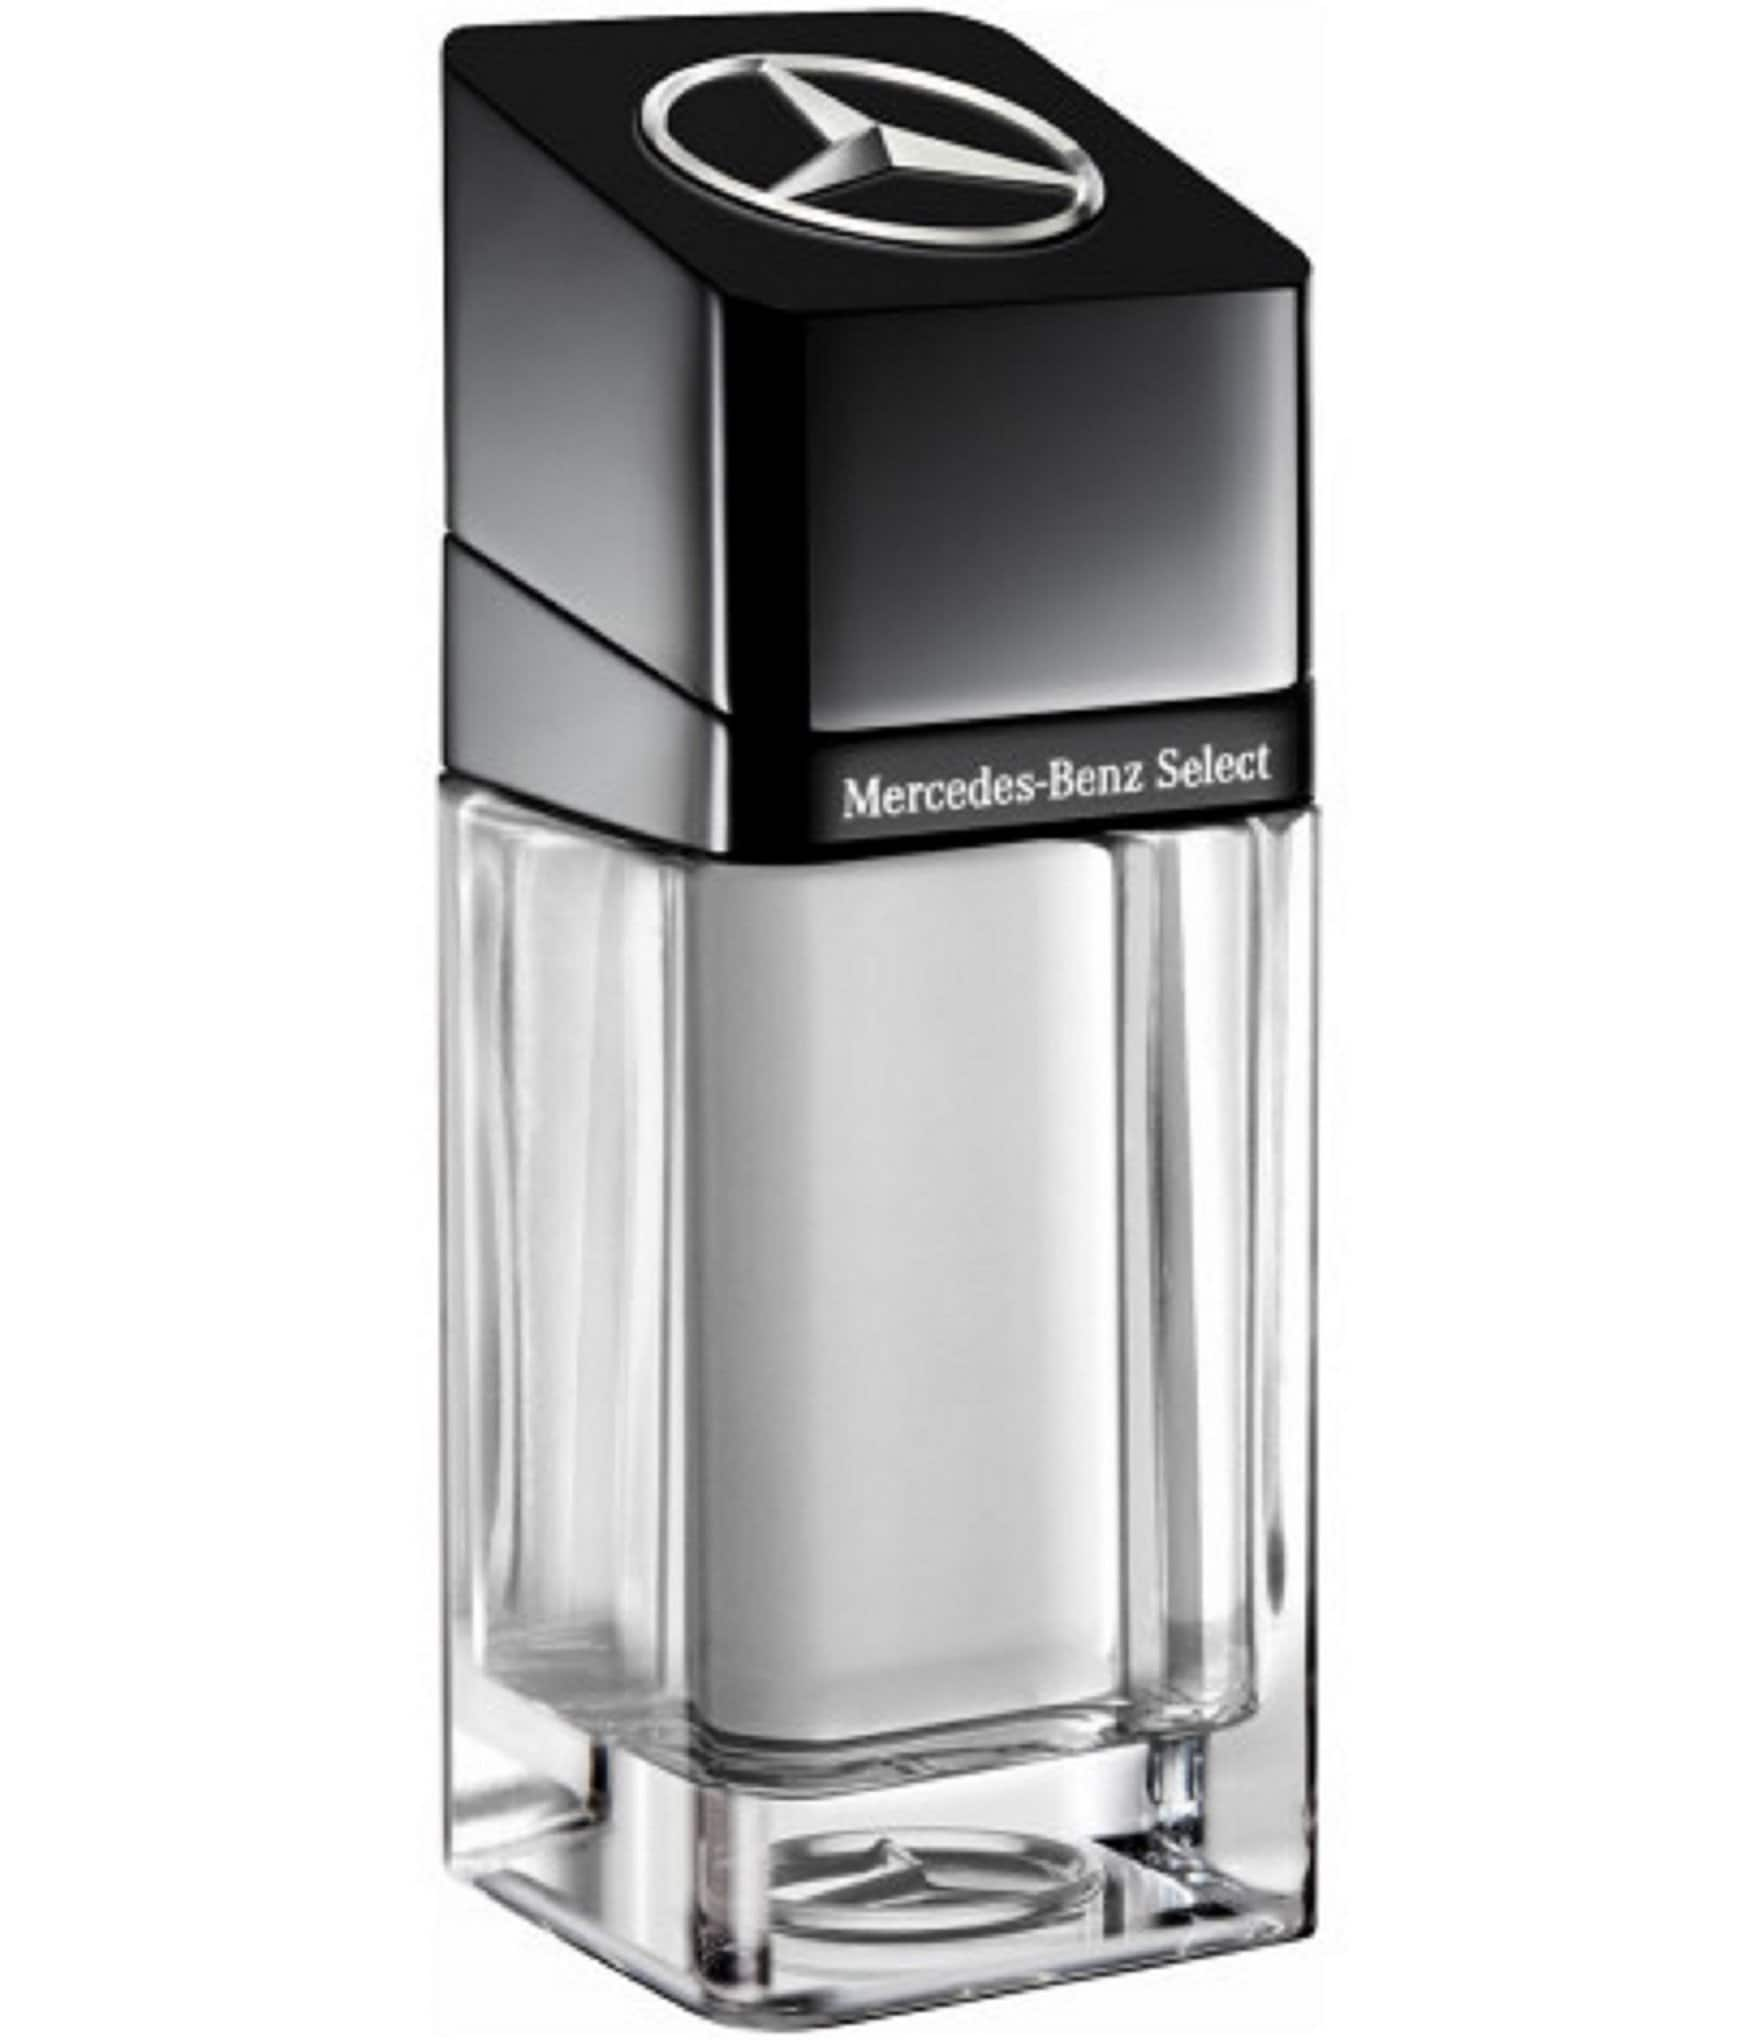 mercedes benz select eau de toilette spray dillards. Black Bedroom Furniture Sets. Home Design Ideas